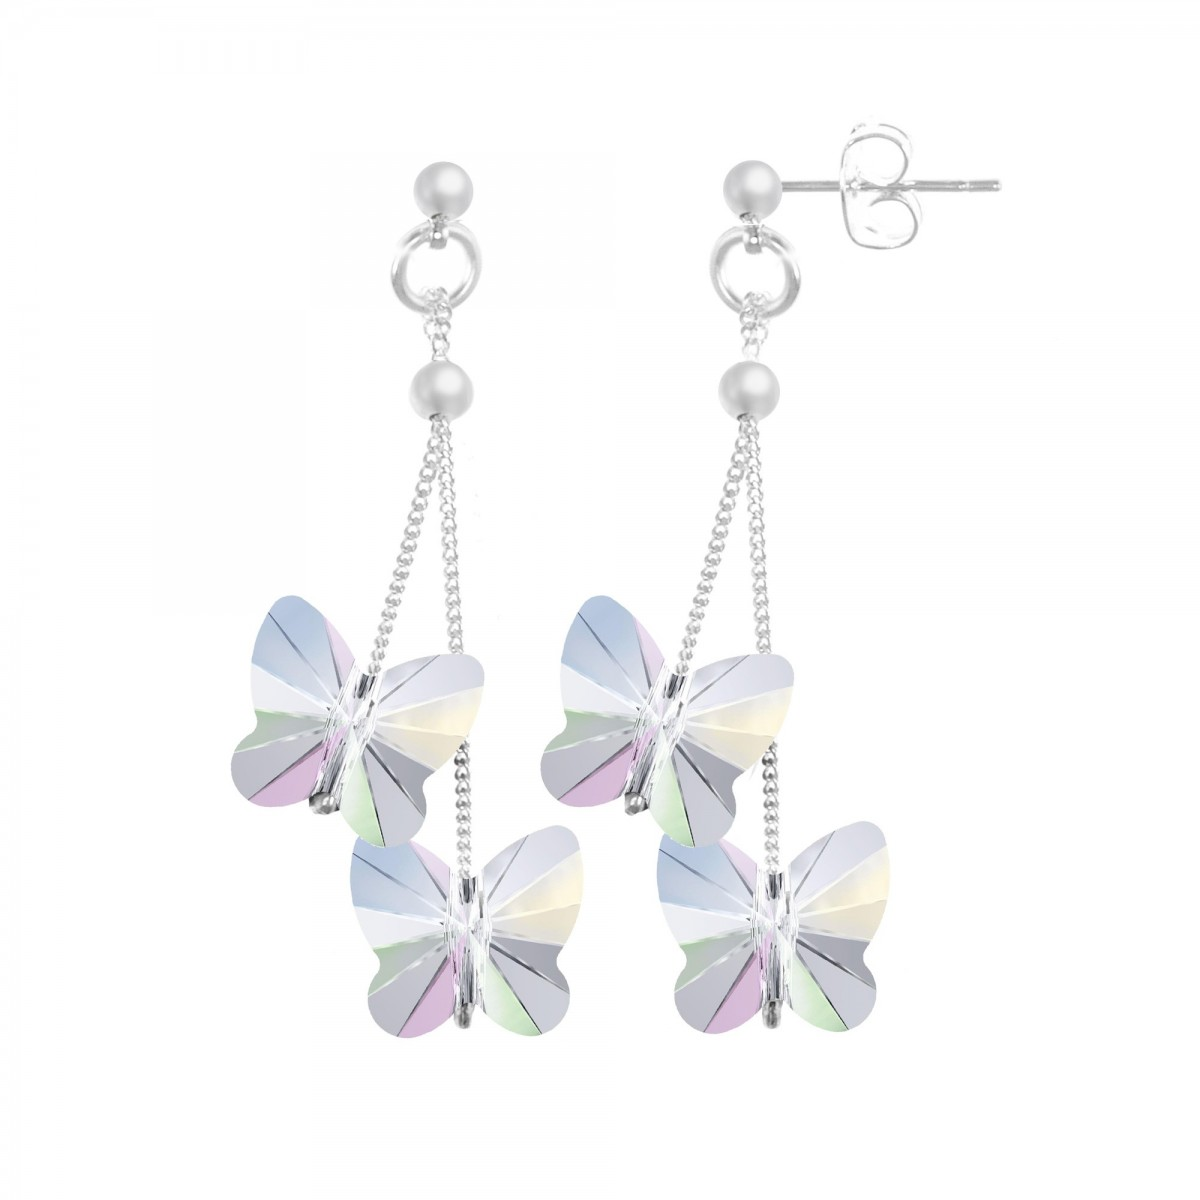 Boucles d'oreilles So Charm ornées de papillons made with crystal from Swarovski